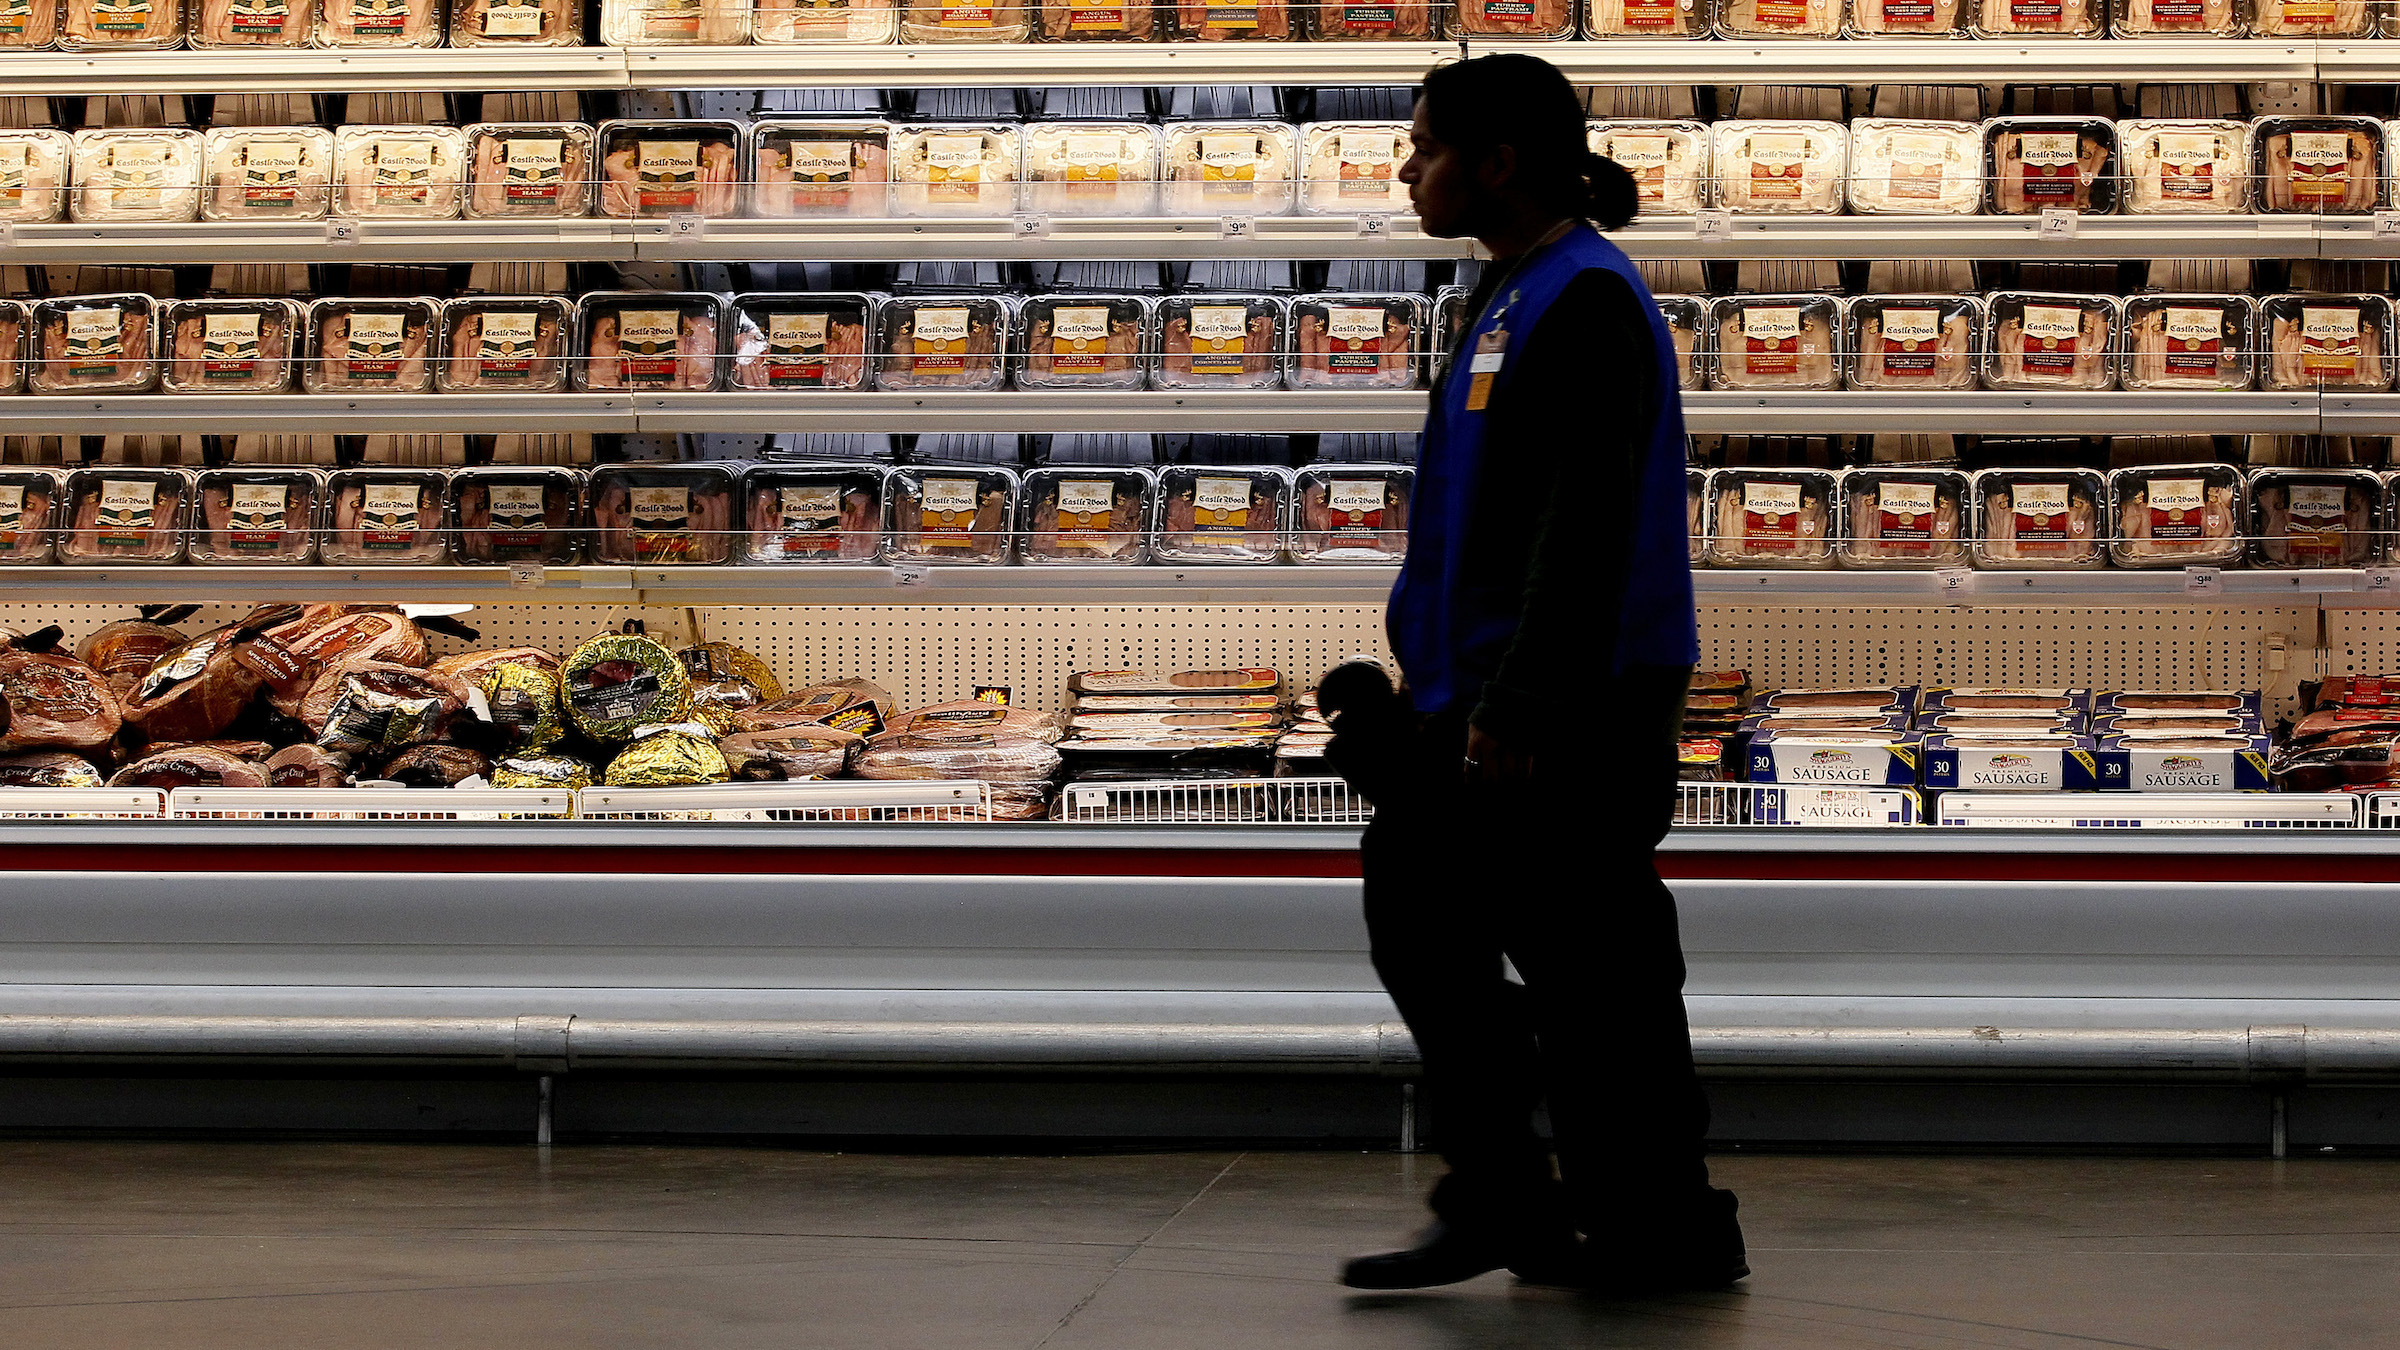 A employee walks by a meat cooler in the grocery section of a Sam's Club during a media tour in Bentonville, Arkansas June 5, 2014.  The tour was part of Walmart Stores Inc. annual shareholder meeting.   REUTERS/Rick Wilking